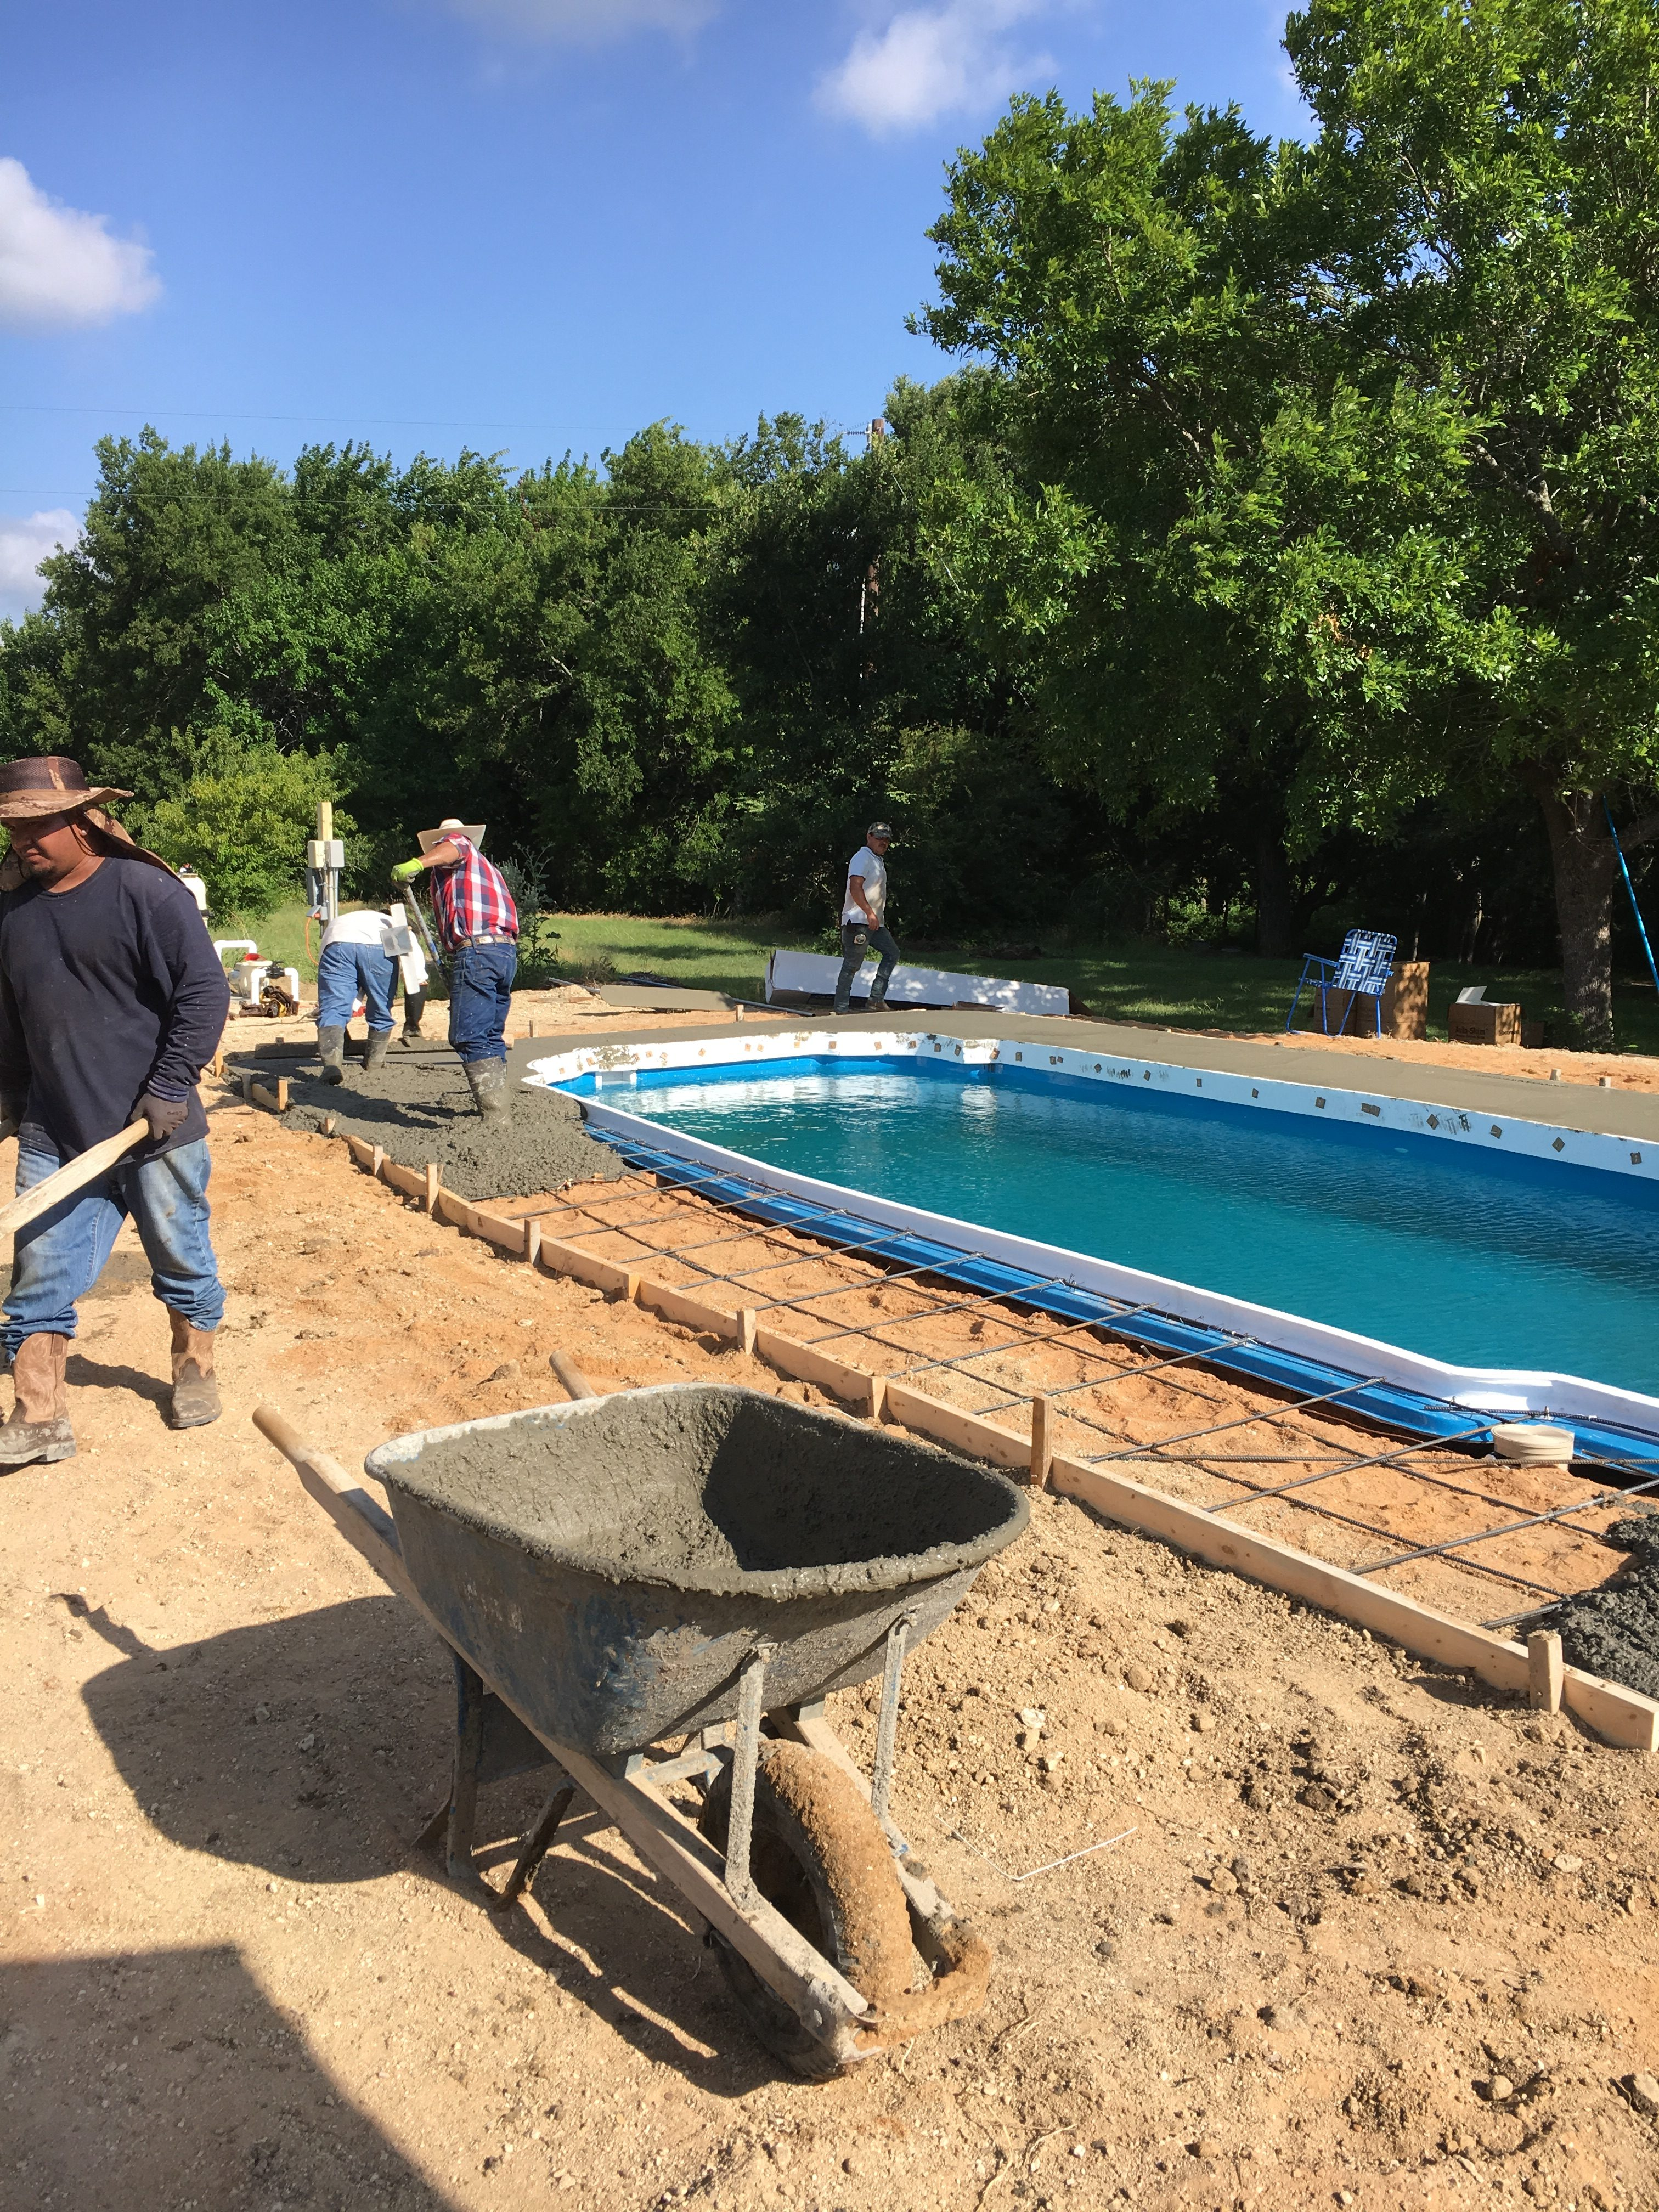 """Pouring a concrete pool deck is tough work. It's also messy work. That's why we always hire a """"start up"""" professional who arrives a day or two after our concrete deck is poured. Our startup tech ensures that your fiberglass pool is properly cleaned and free of any debris that might linger after our construction process. They essentially """"clean it up"""" so that you and your family are ready to swim the day after our first chemical treatment!"""